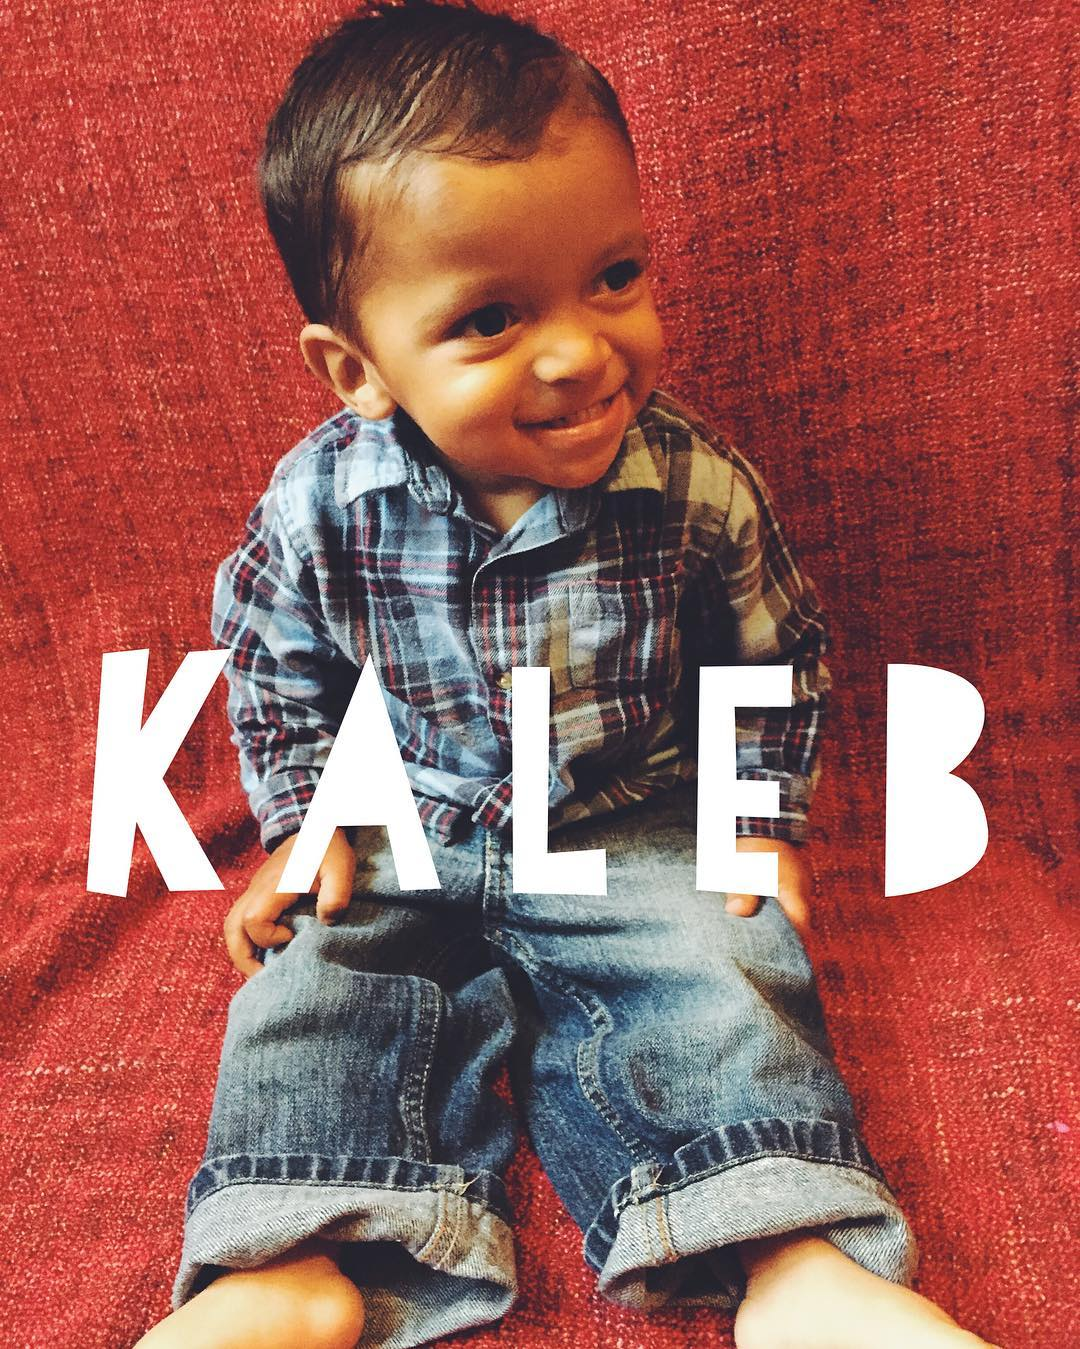 Today we have Kaleb!  Kaleb's favorite food is bananas and he loves to play with blocks. Kaleb eats more another other baby in the transition and most of the time he even eats more than Rachel! Kaleb is a ladies man as he is always giving hugs and kisses. We love this little guy and he is such a blessing to our ministry. Like us on Facebook to see more about the Transition House?